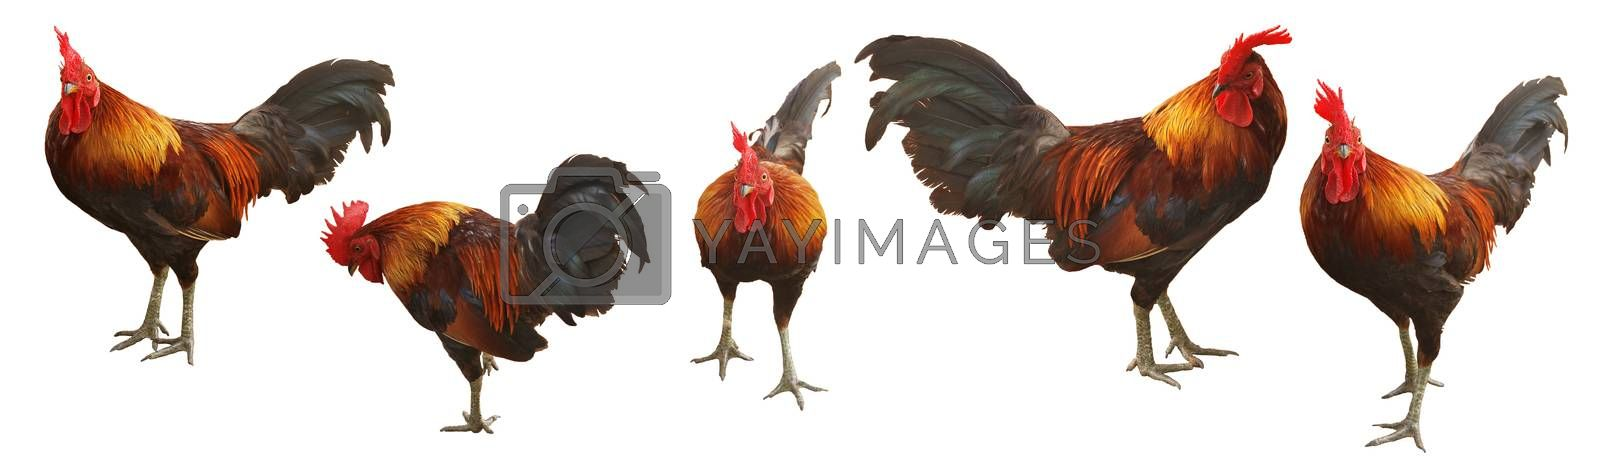 Bantam Chad, Thai chicken breed on white background. (With Clipping Path).